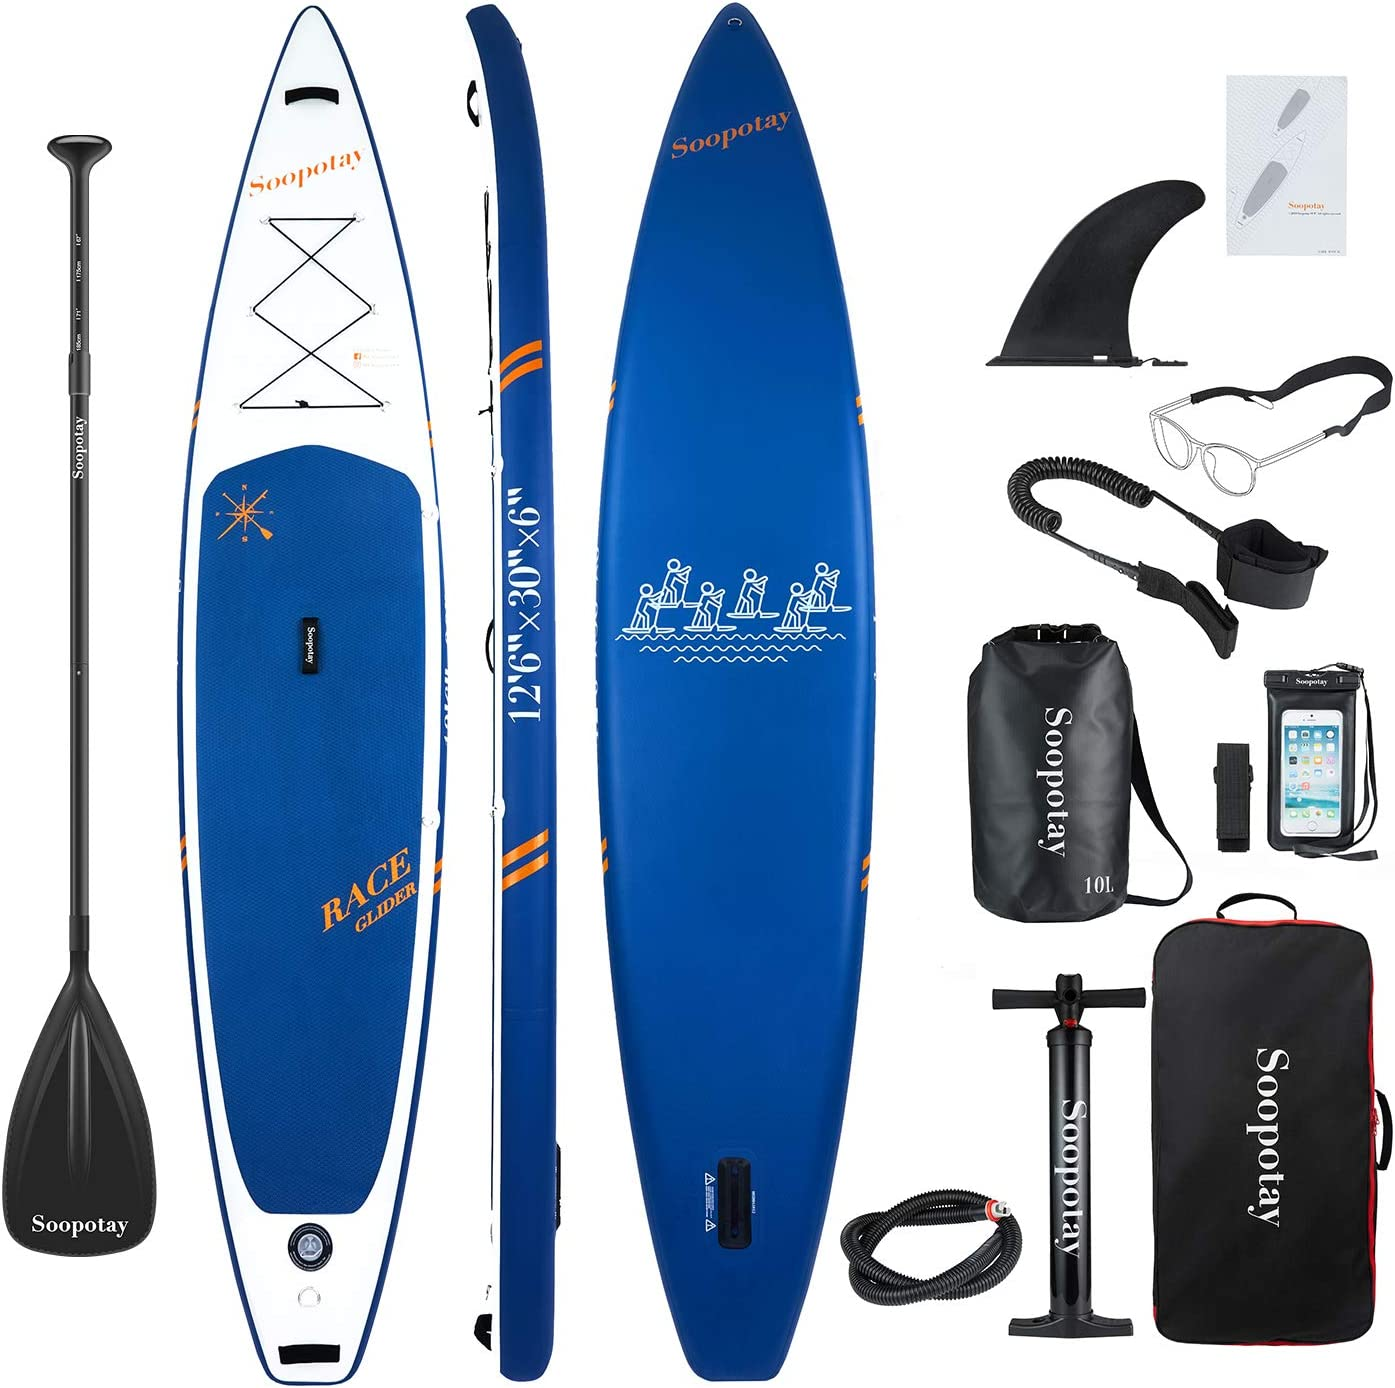 SOOPOTAY Inflatable SUP Stand Up Paddle Board, Inflatable SUP Board, iSUP Package with All Accessories Updated-Racing-Navy Blue-12 6 x 30 x 6